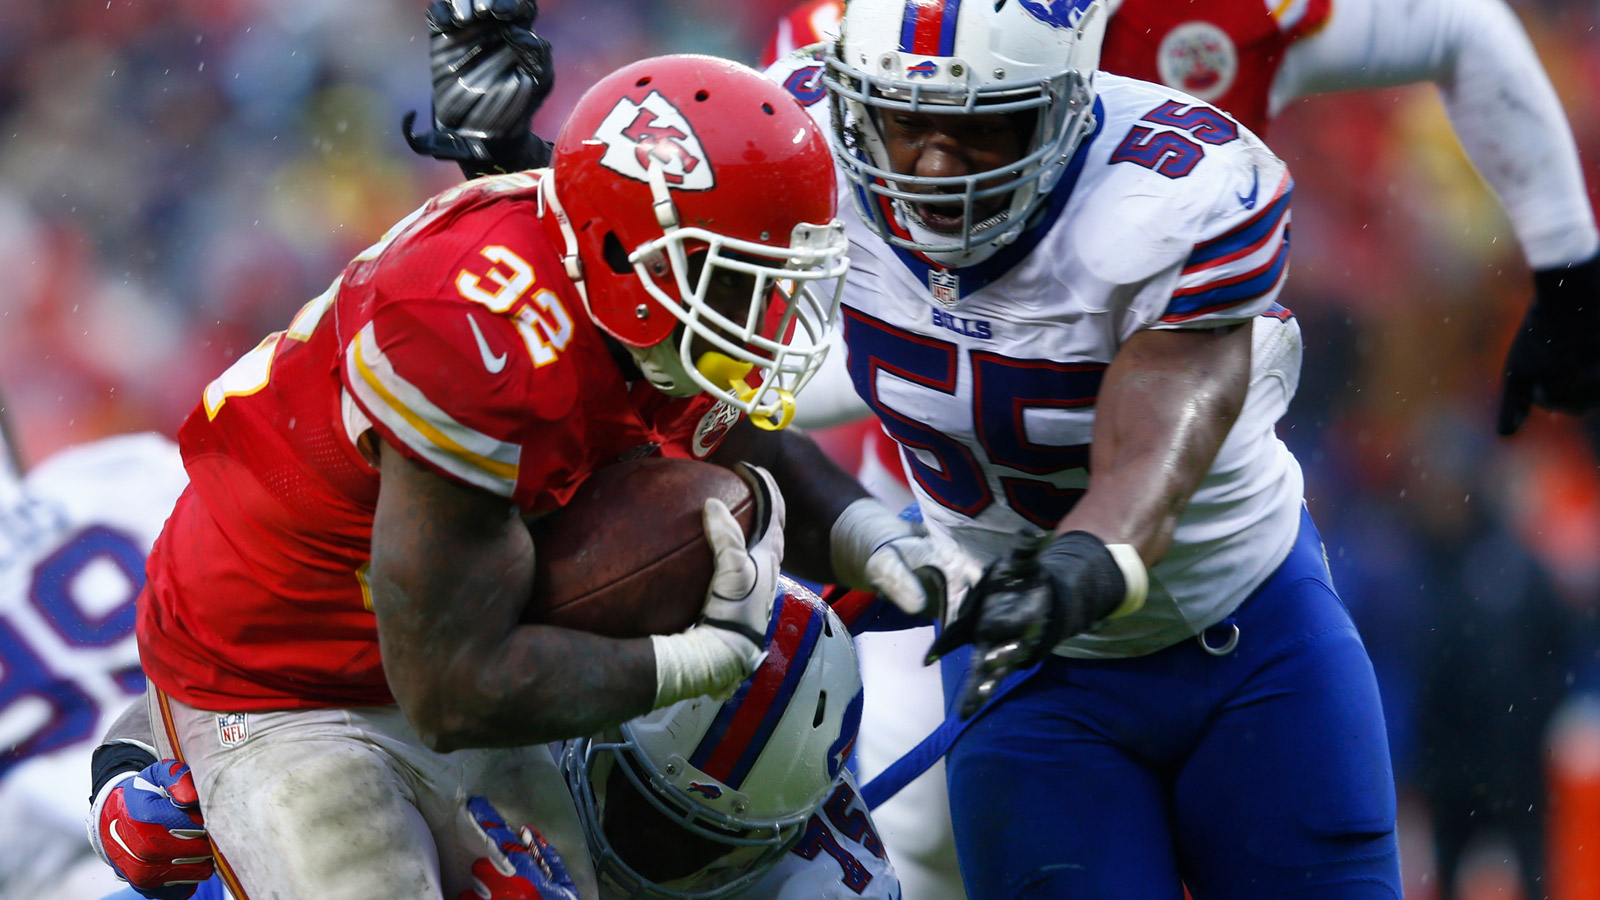 Spencer Ware of the Kansas City Chiefs is tackled by Jerry Hughes #55 of the Buffalo Bills at Arrowhead Stadium on Nov. 29, 2015. (credit: Jamie Squire/Getty Images)